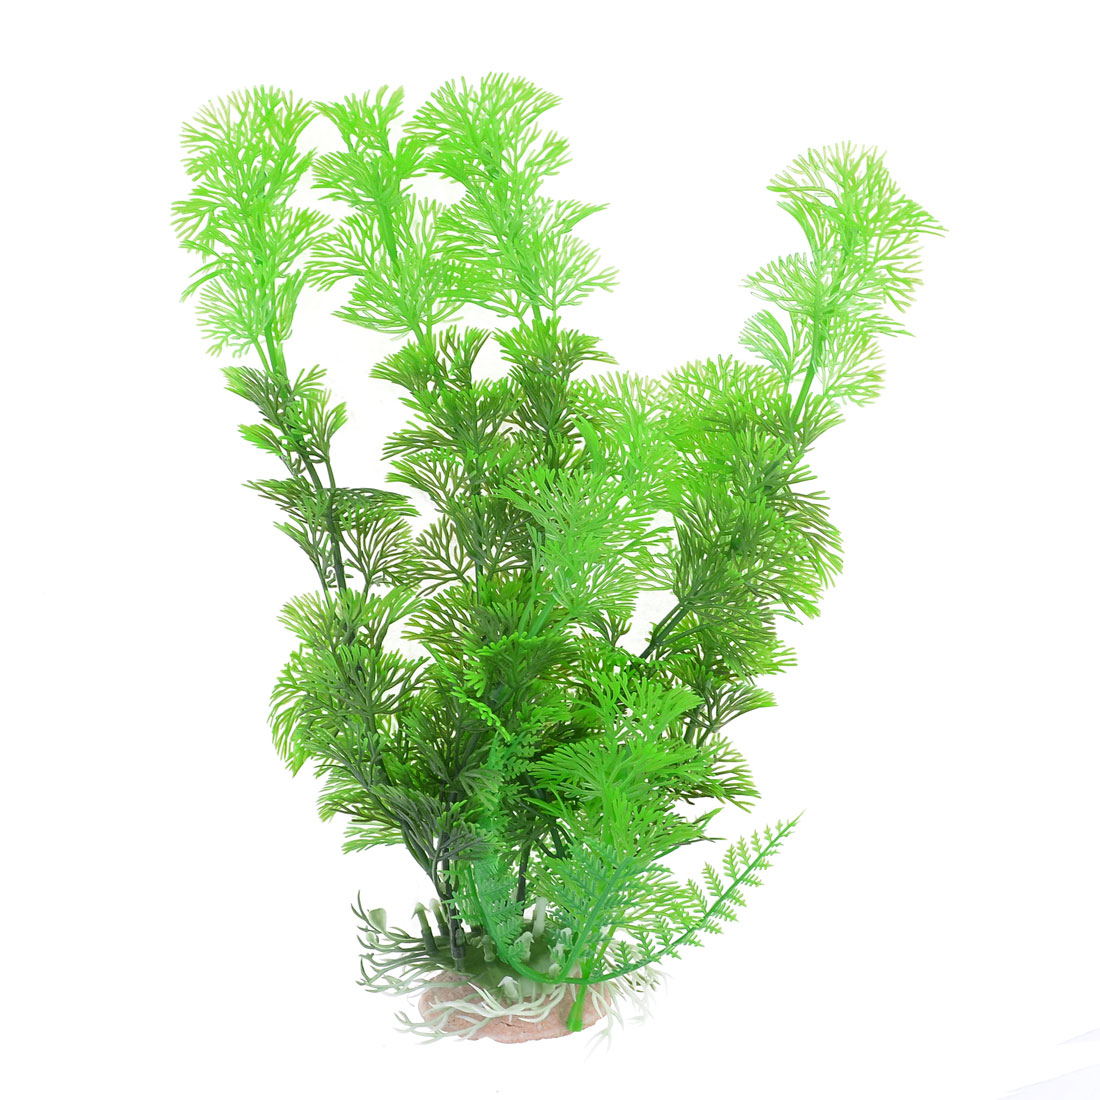 Green Plastic Aquarium Aquascaping Ornament Underwater Grass Plant